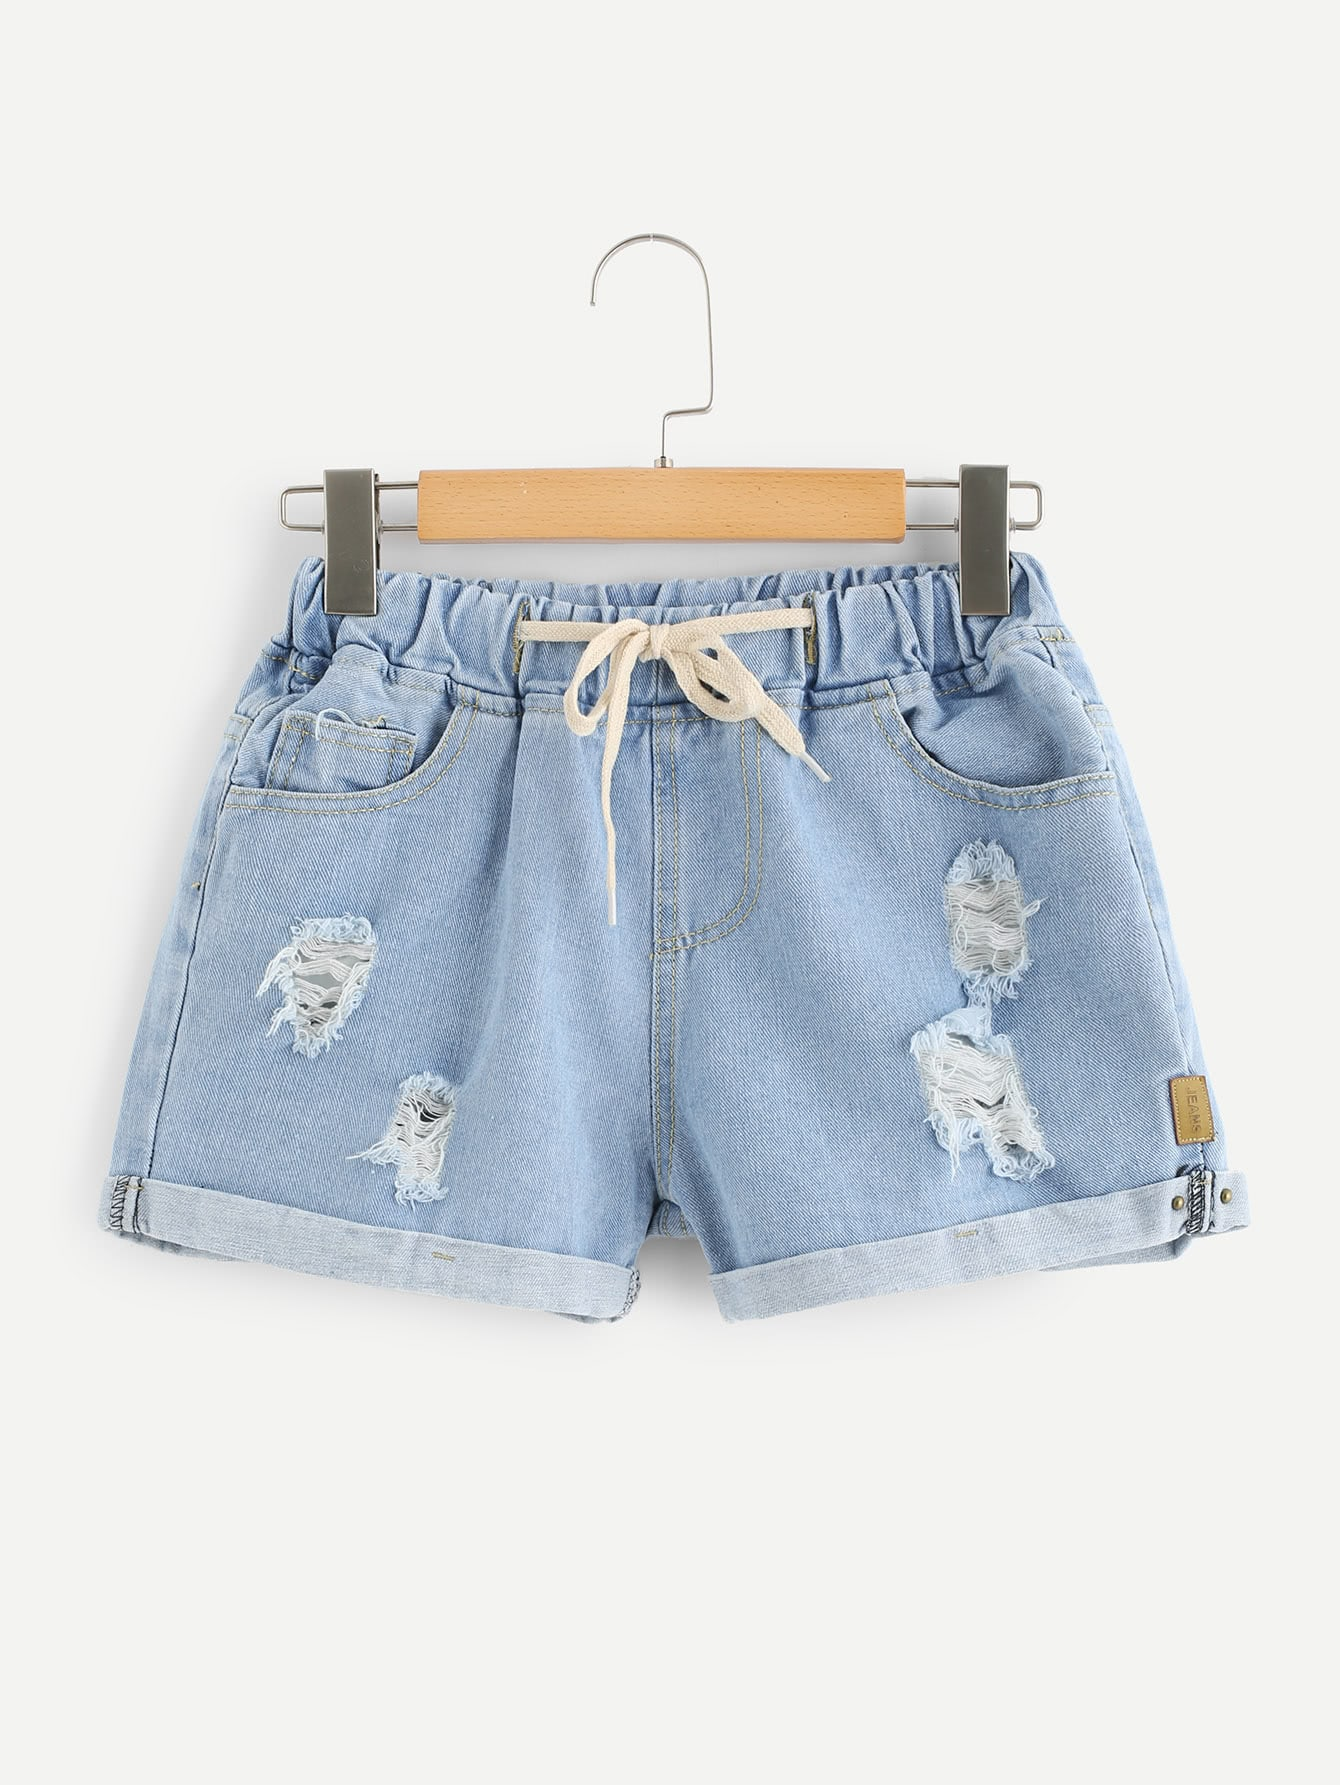 Drawstring Waist Ripped Denim Shorts denim high waist ripped bermuda shorts